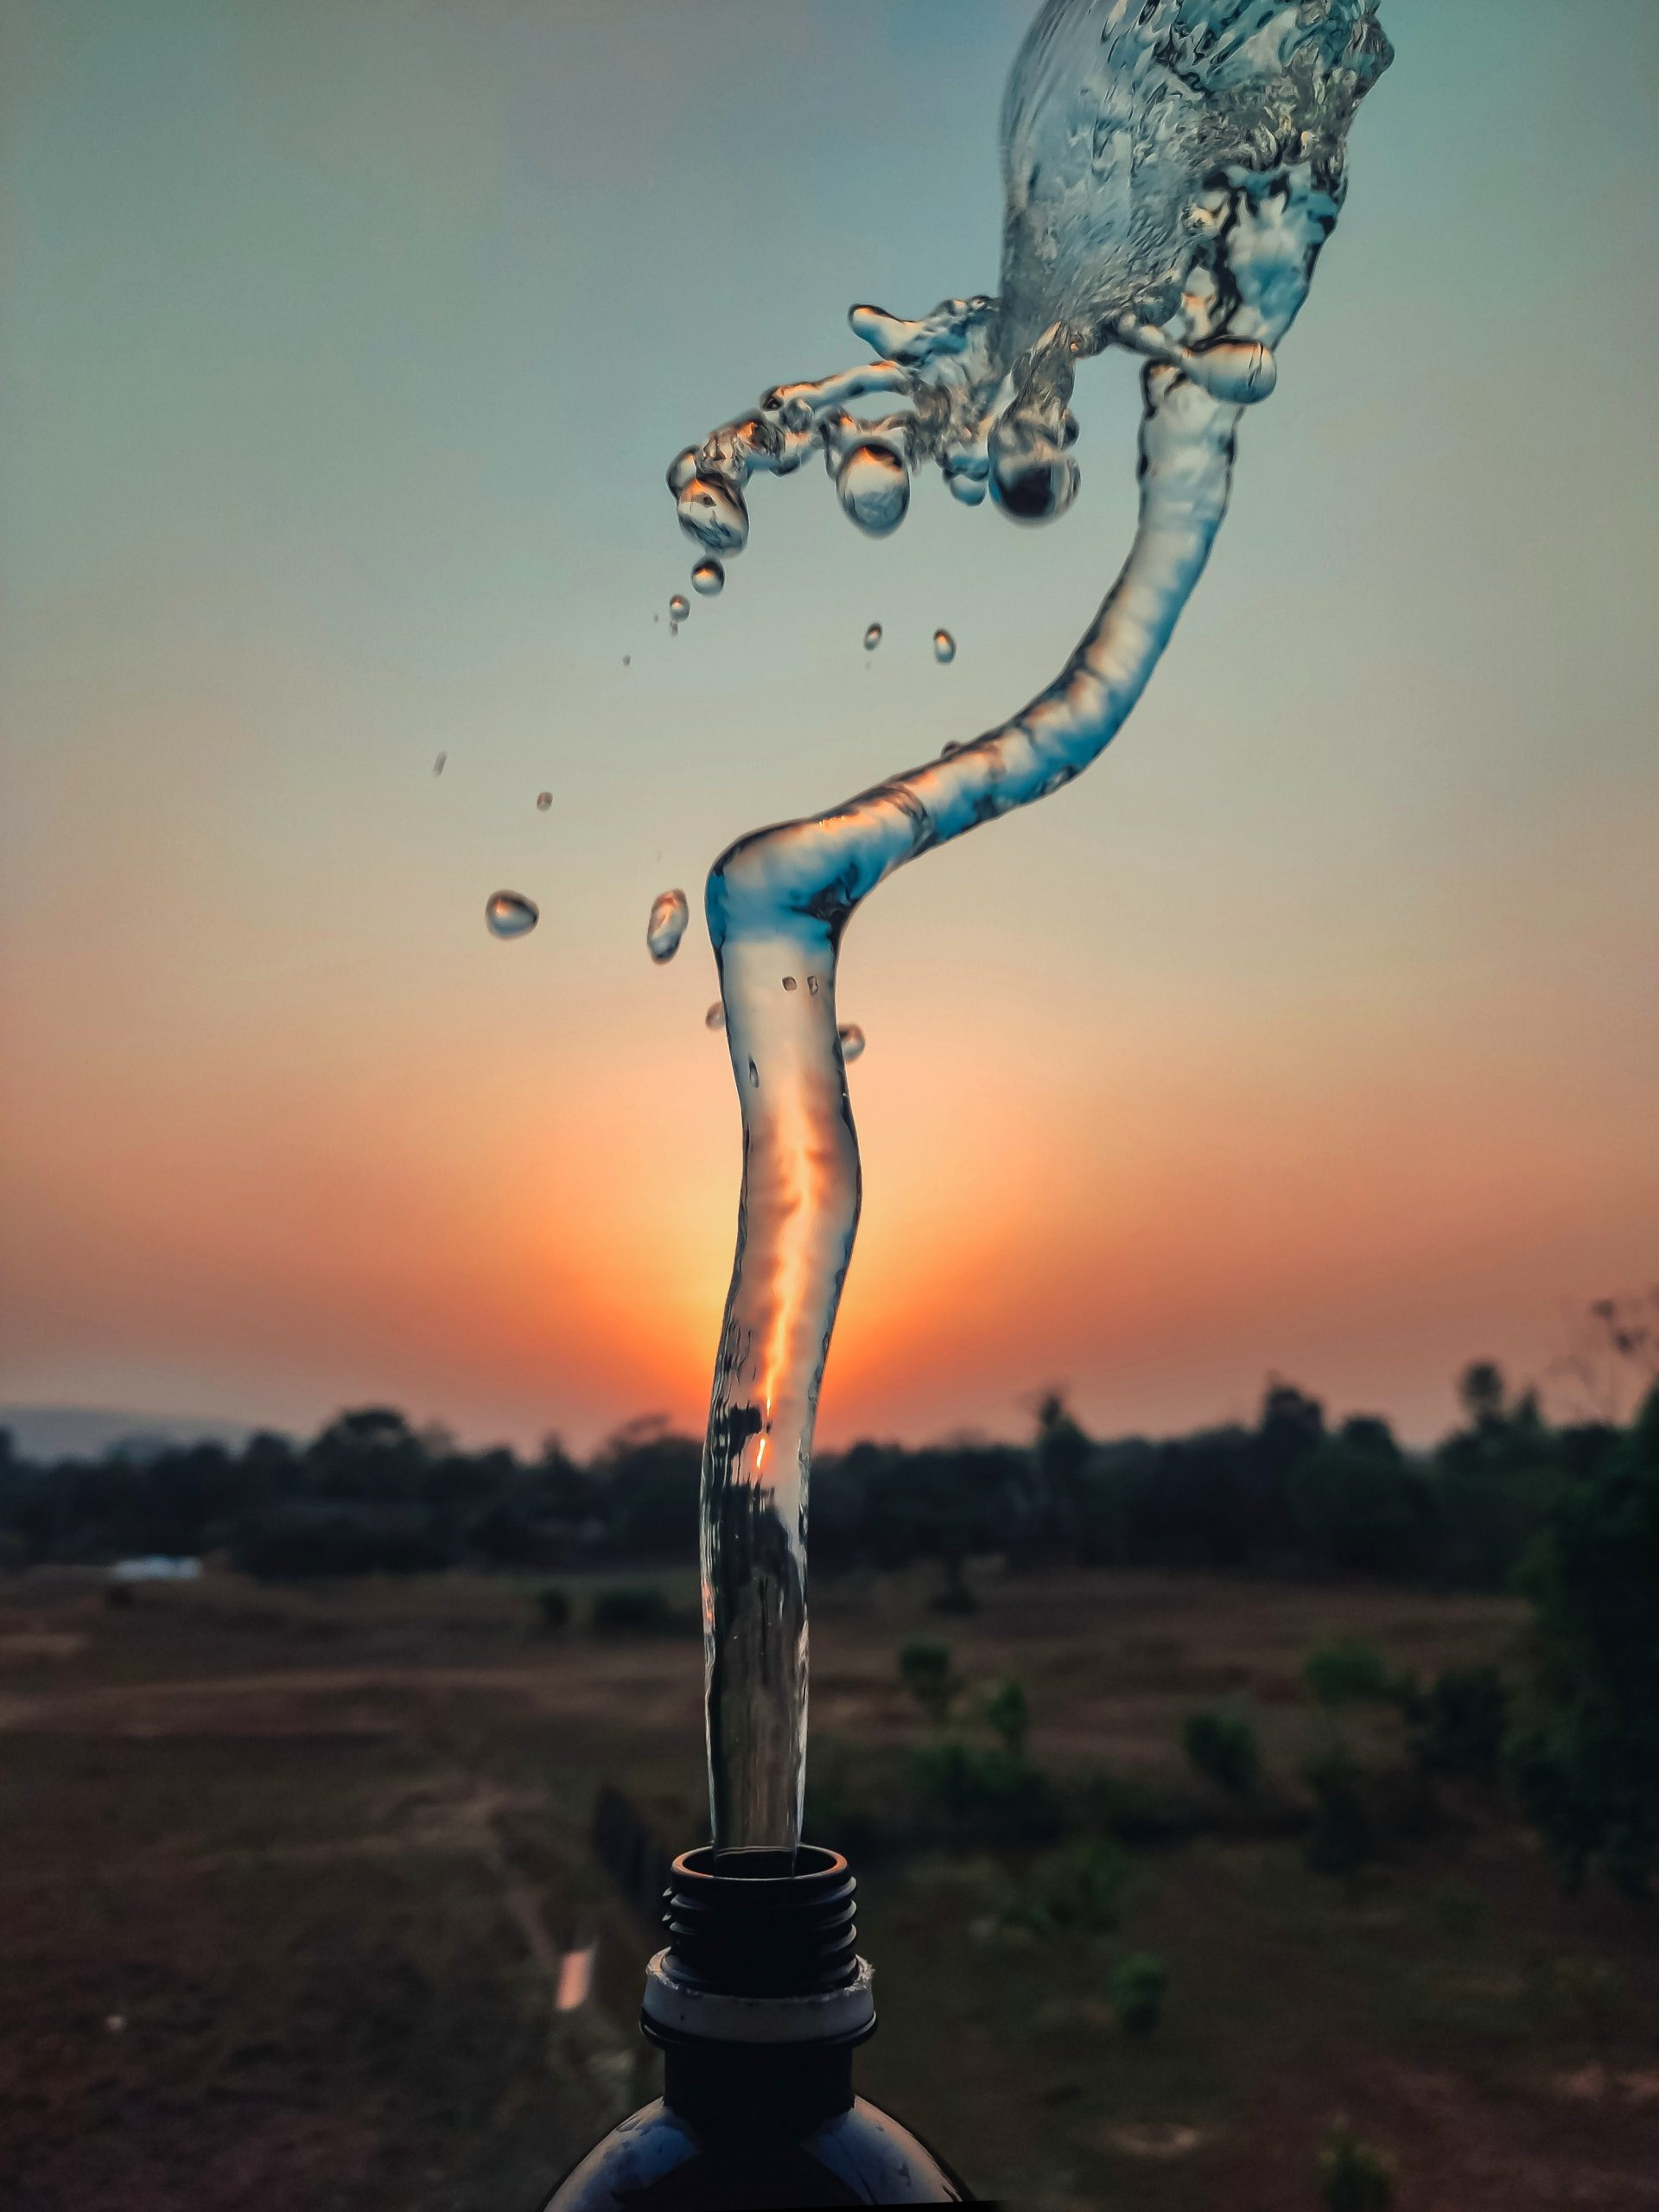 Water splashing from bottle